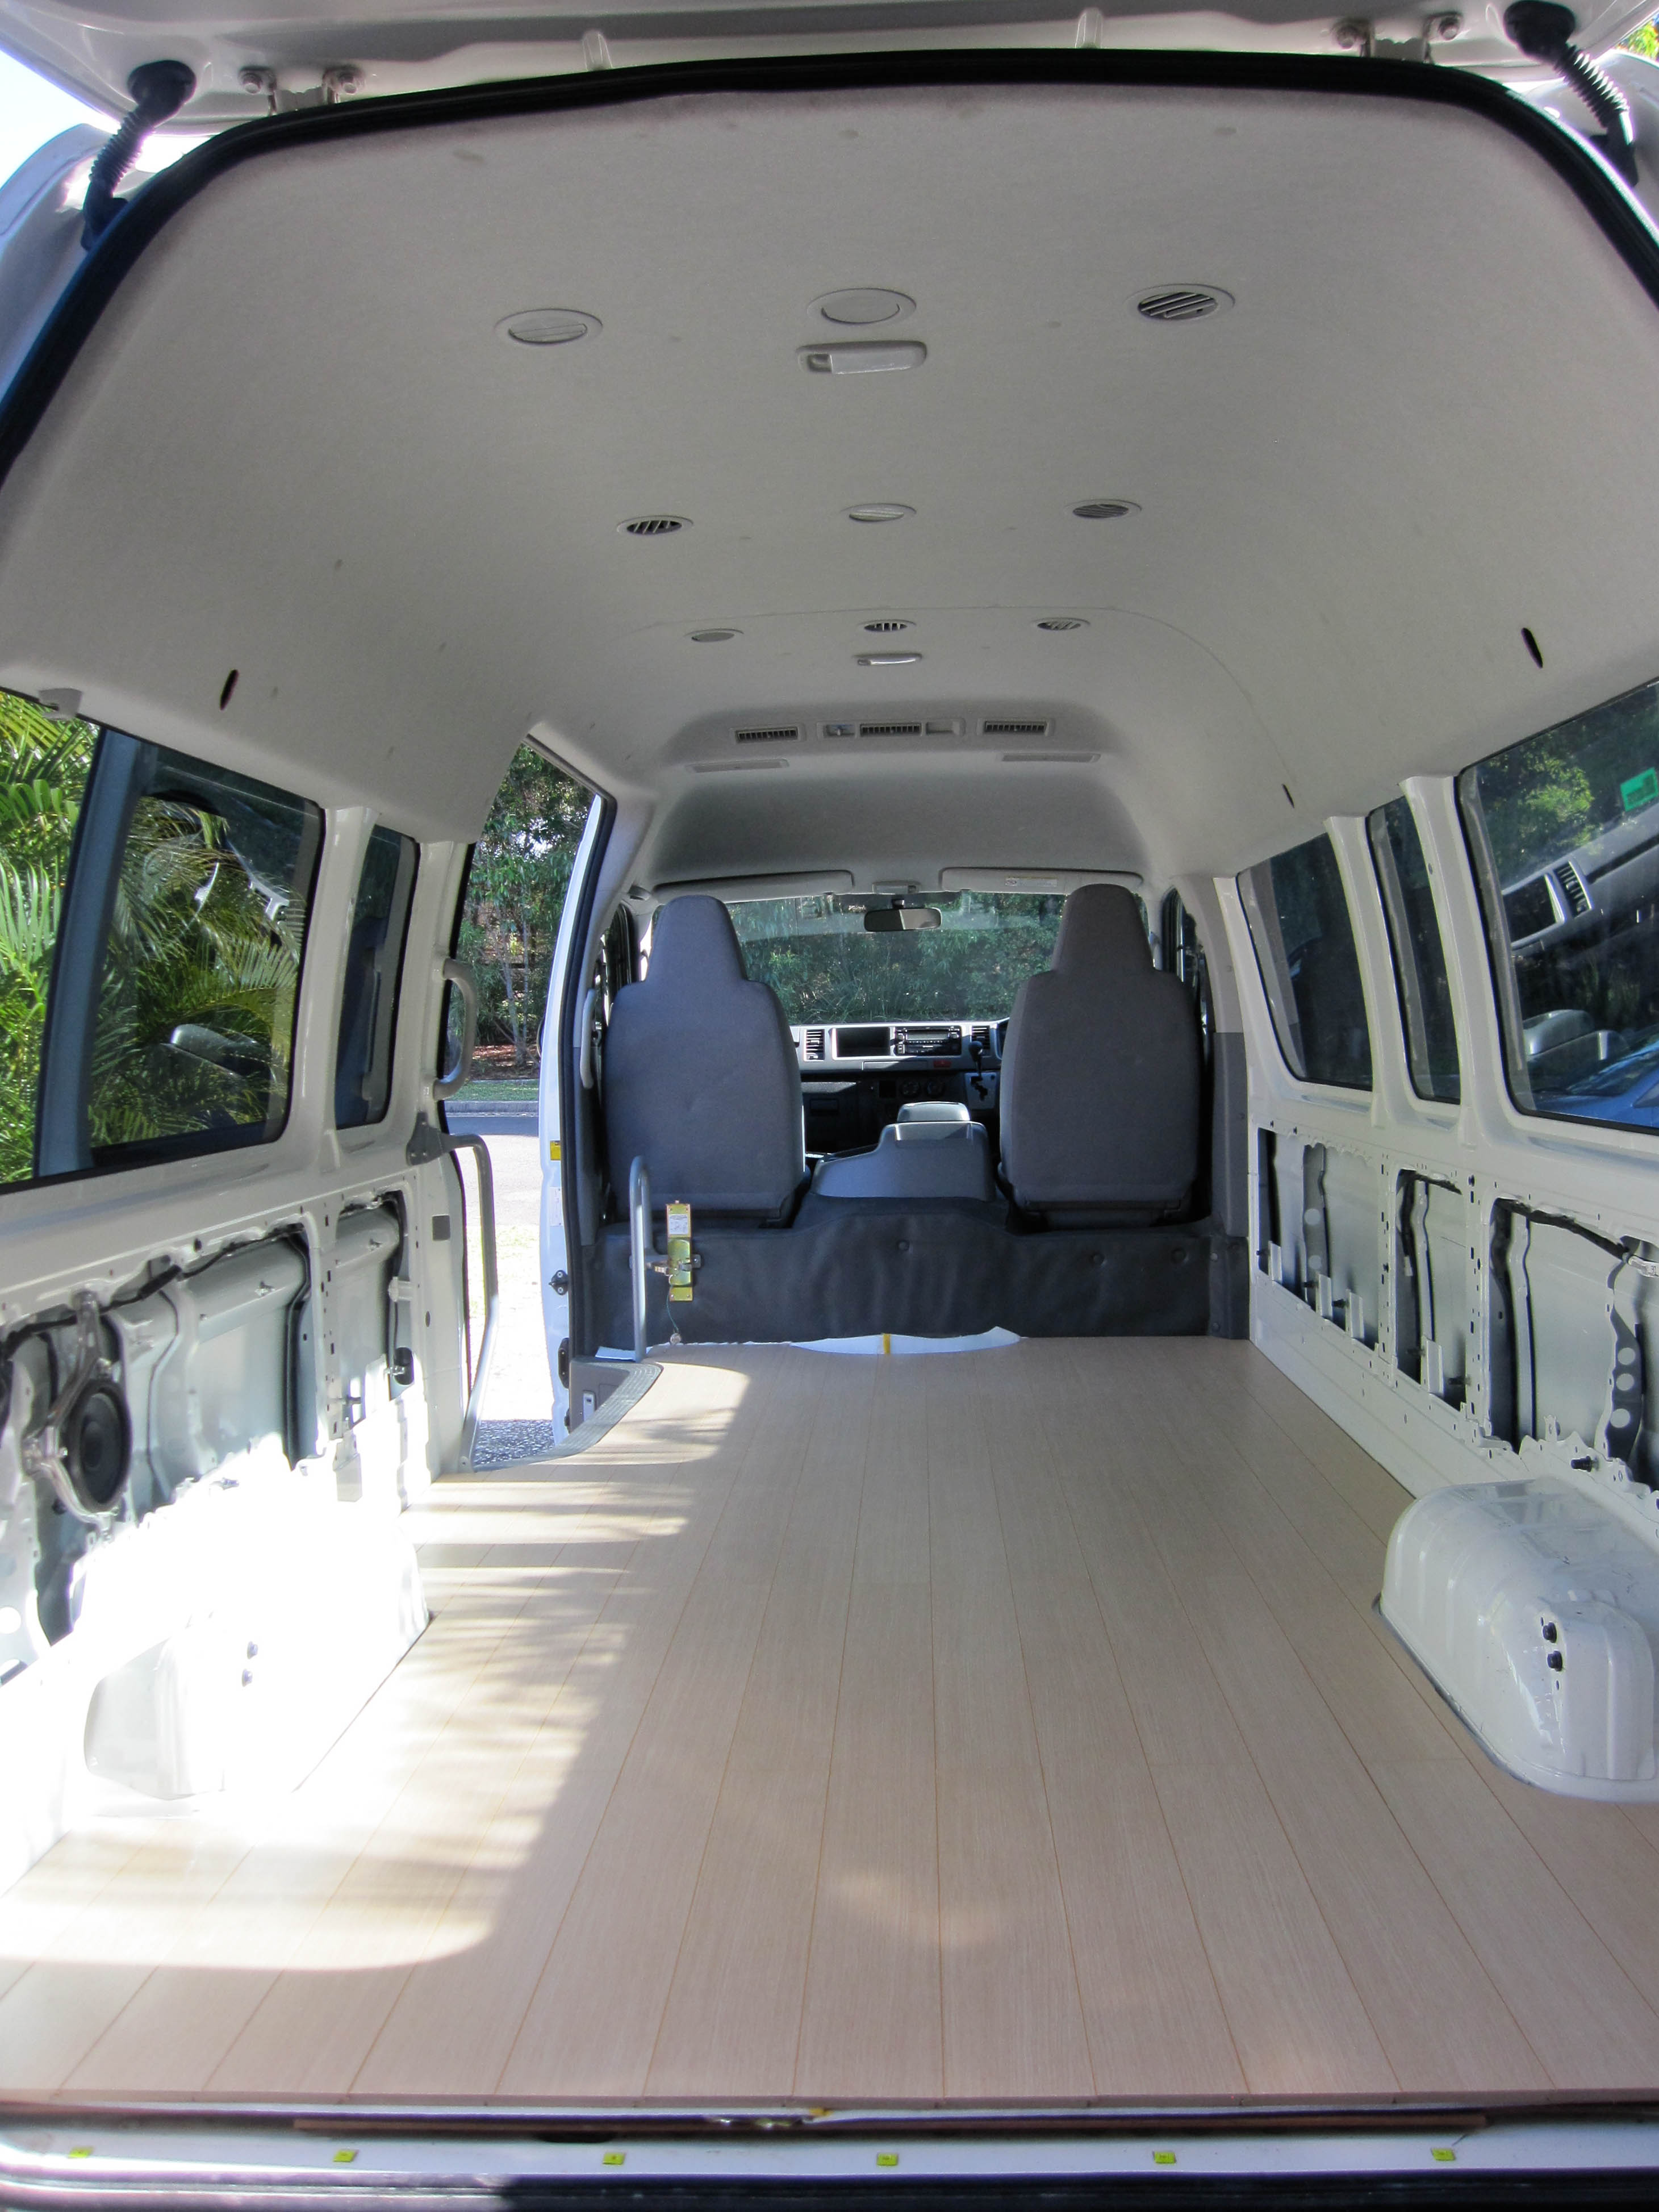 Building a diy campervan | The Campervan Converts